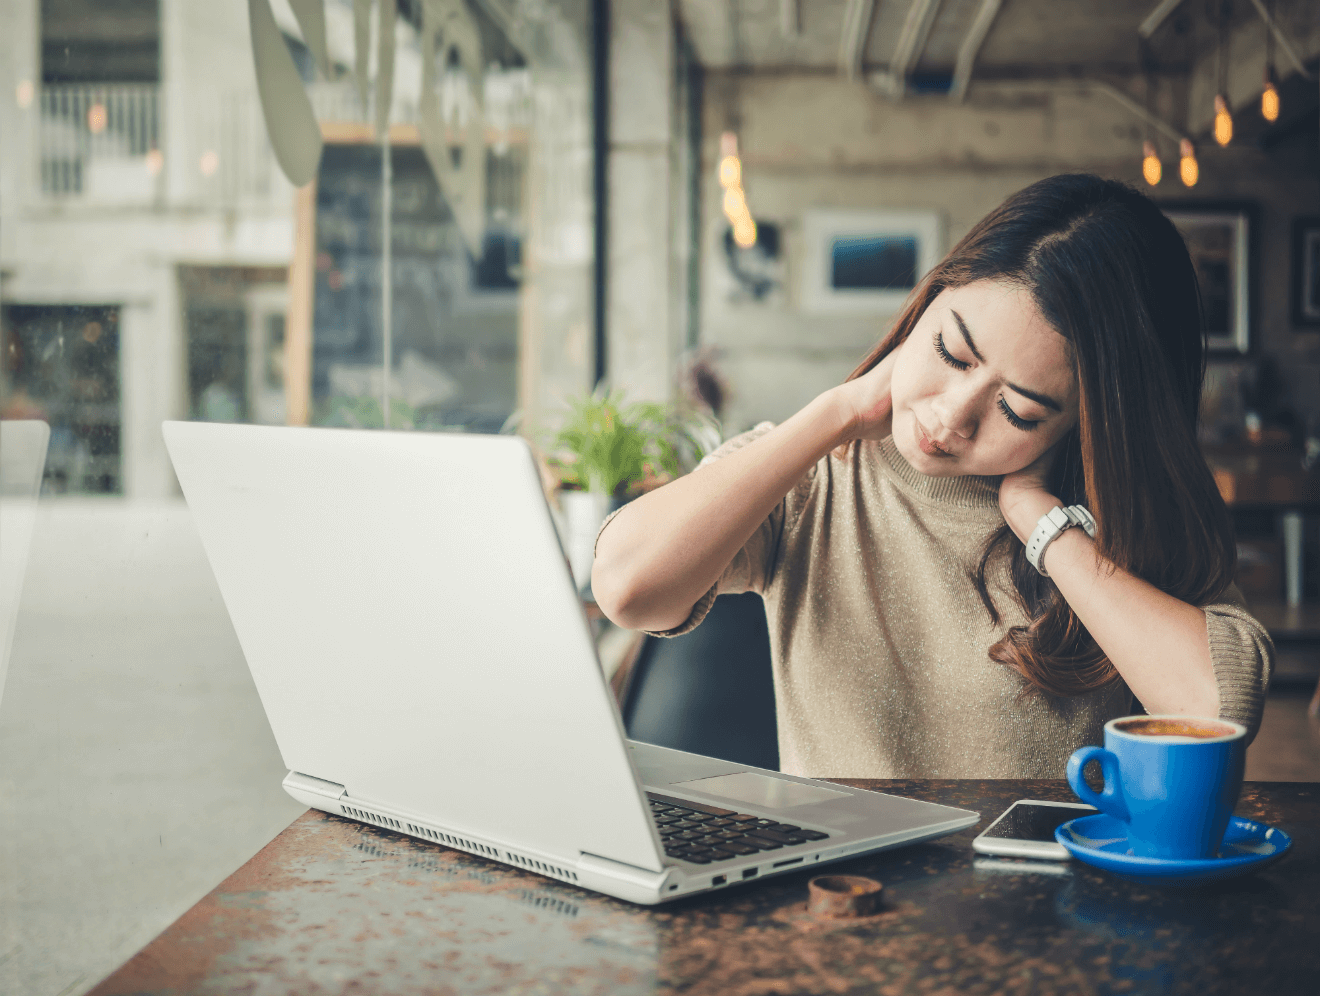 stressed sore woman working on computer at cafe